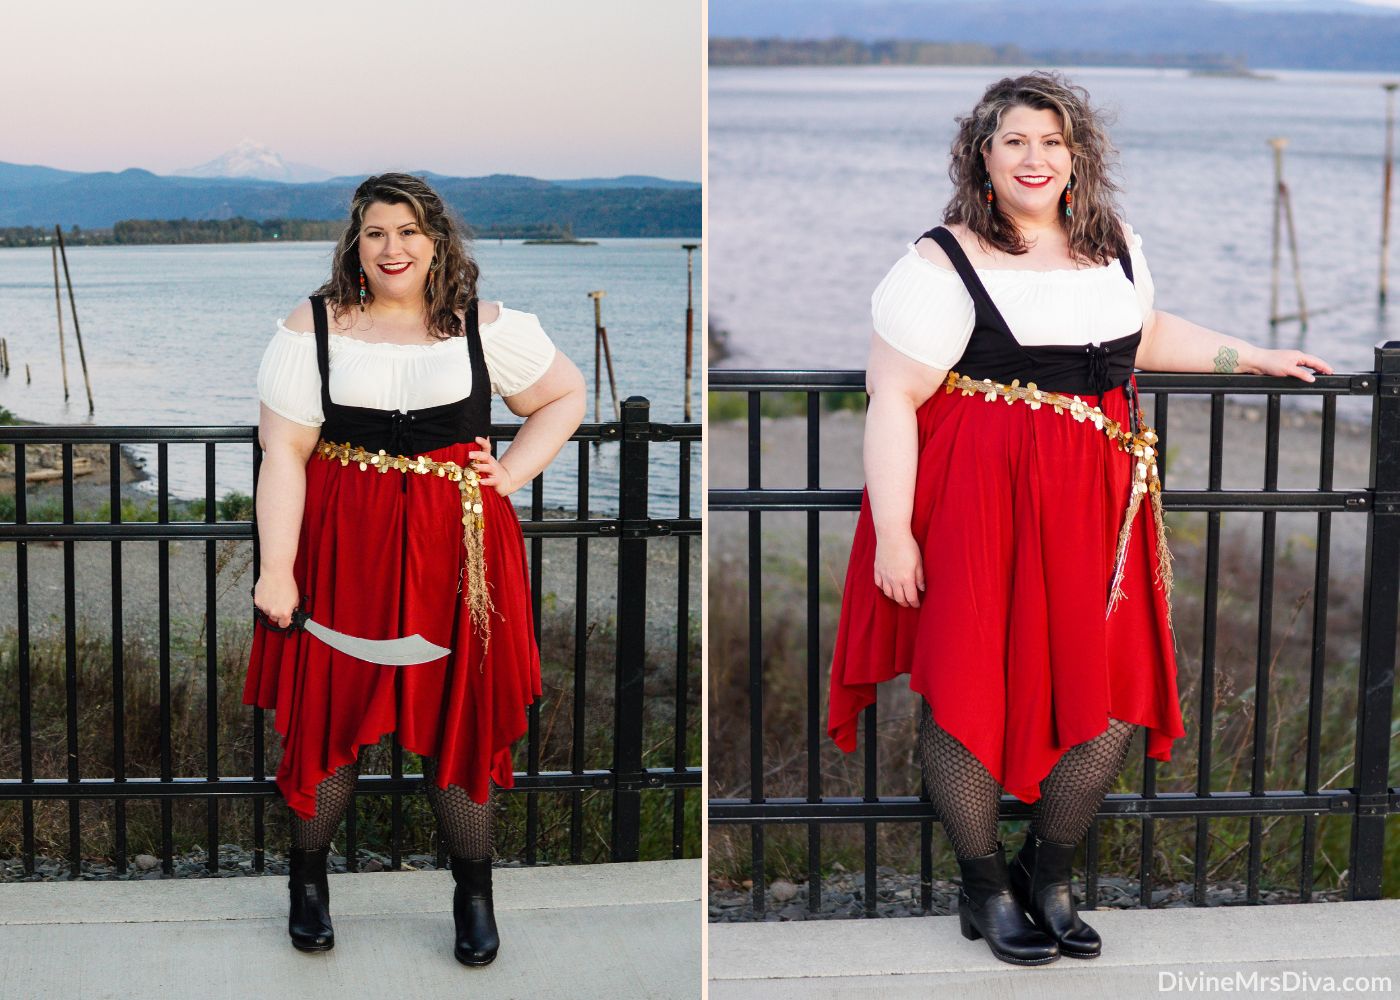 Celebrating Halloween 2020 with a trio of costumes that are easy to wear and super cute – Wonder Woman, Sabrina Spellman, & a Fiery Pirate!- DivineMrsDiva.com #psblogger #plussize #styleblogger #plussizeblogger #plussizefashion #psootd #ootd #plussizeclothing #outfit #style #torrid #Torridinsider #Feelthefit #hottopic #htfandom #Halloween #HalloweenStyle #PlusSizeHalloween #HalloweenCostume